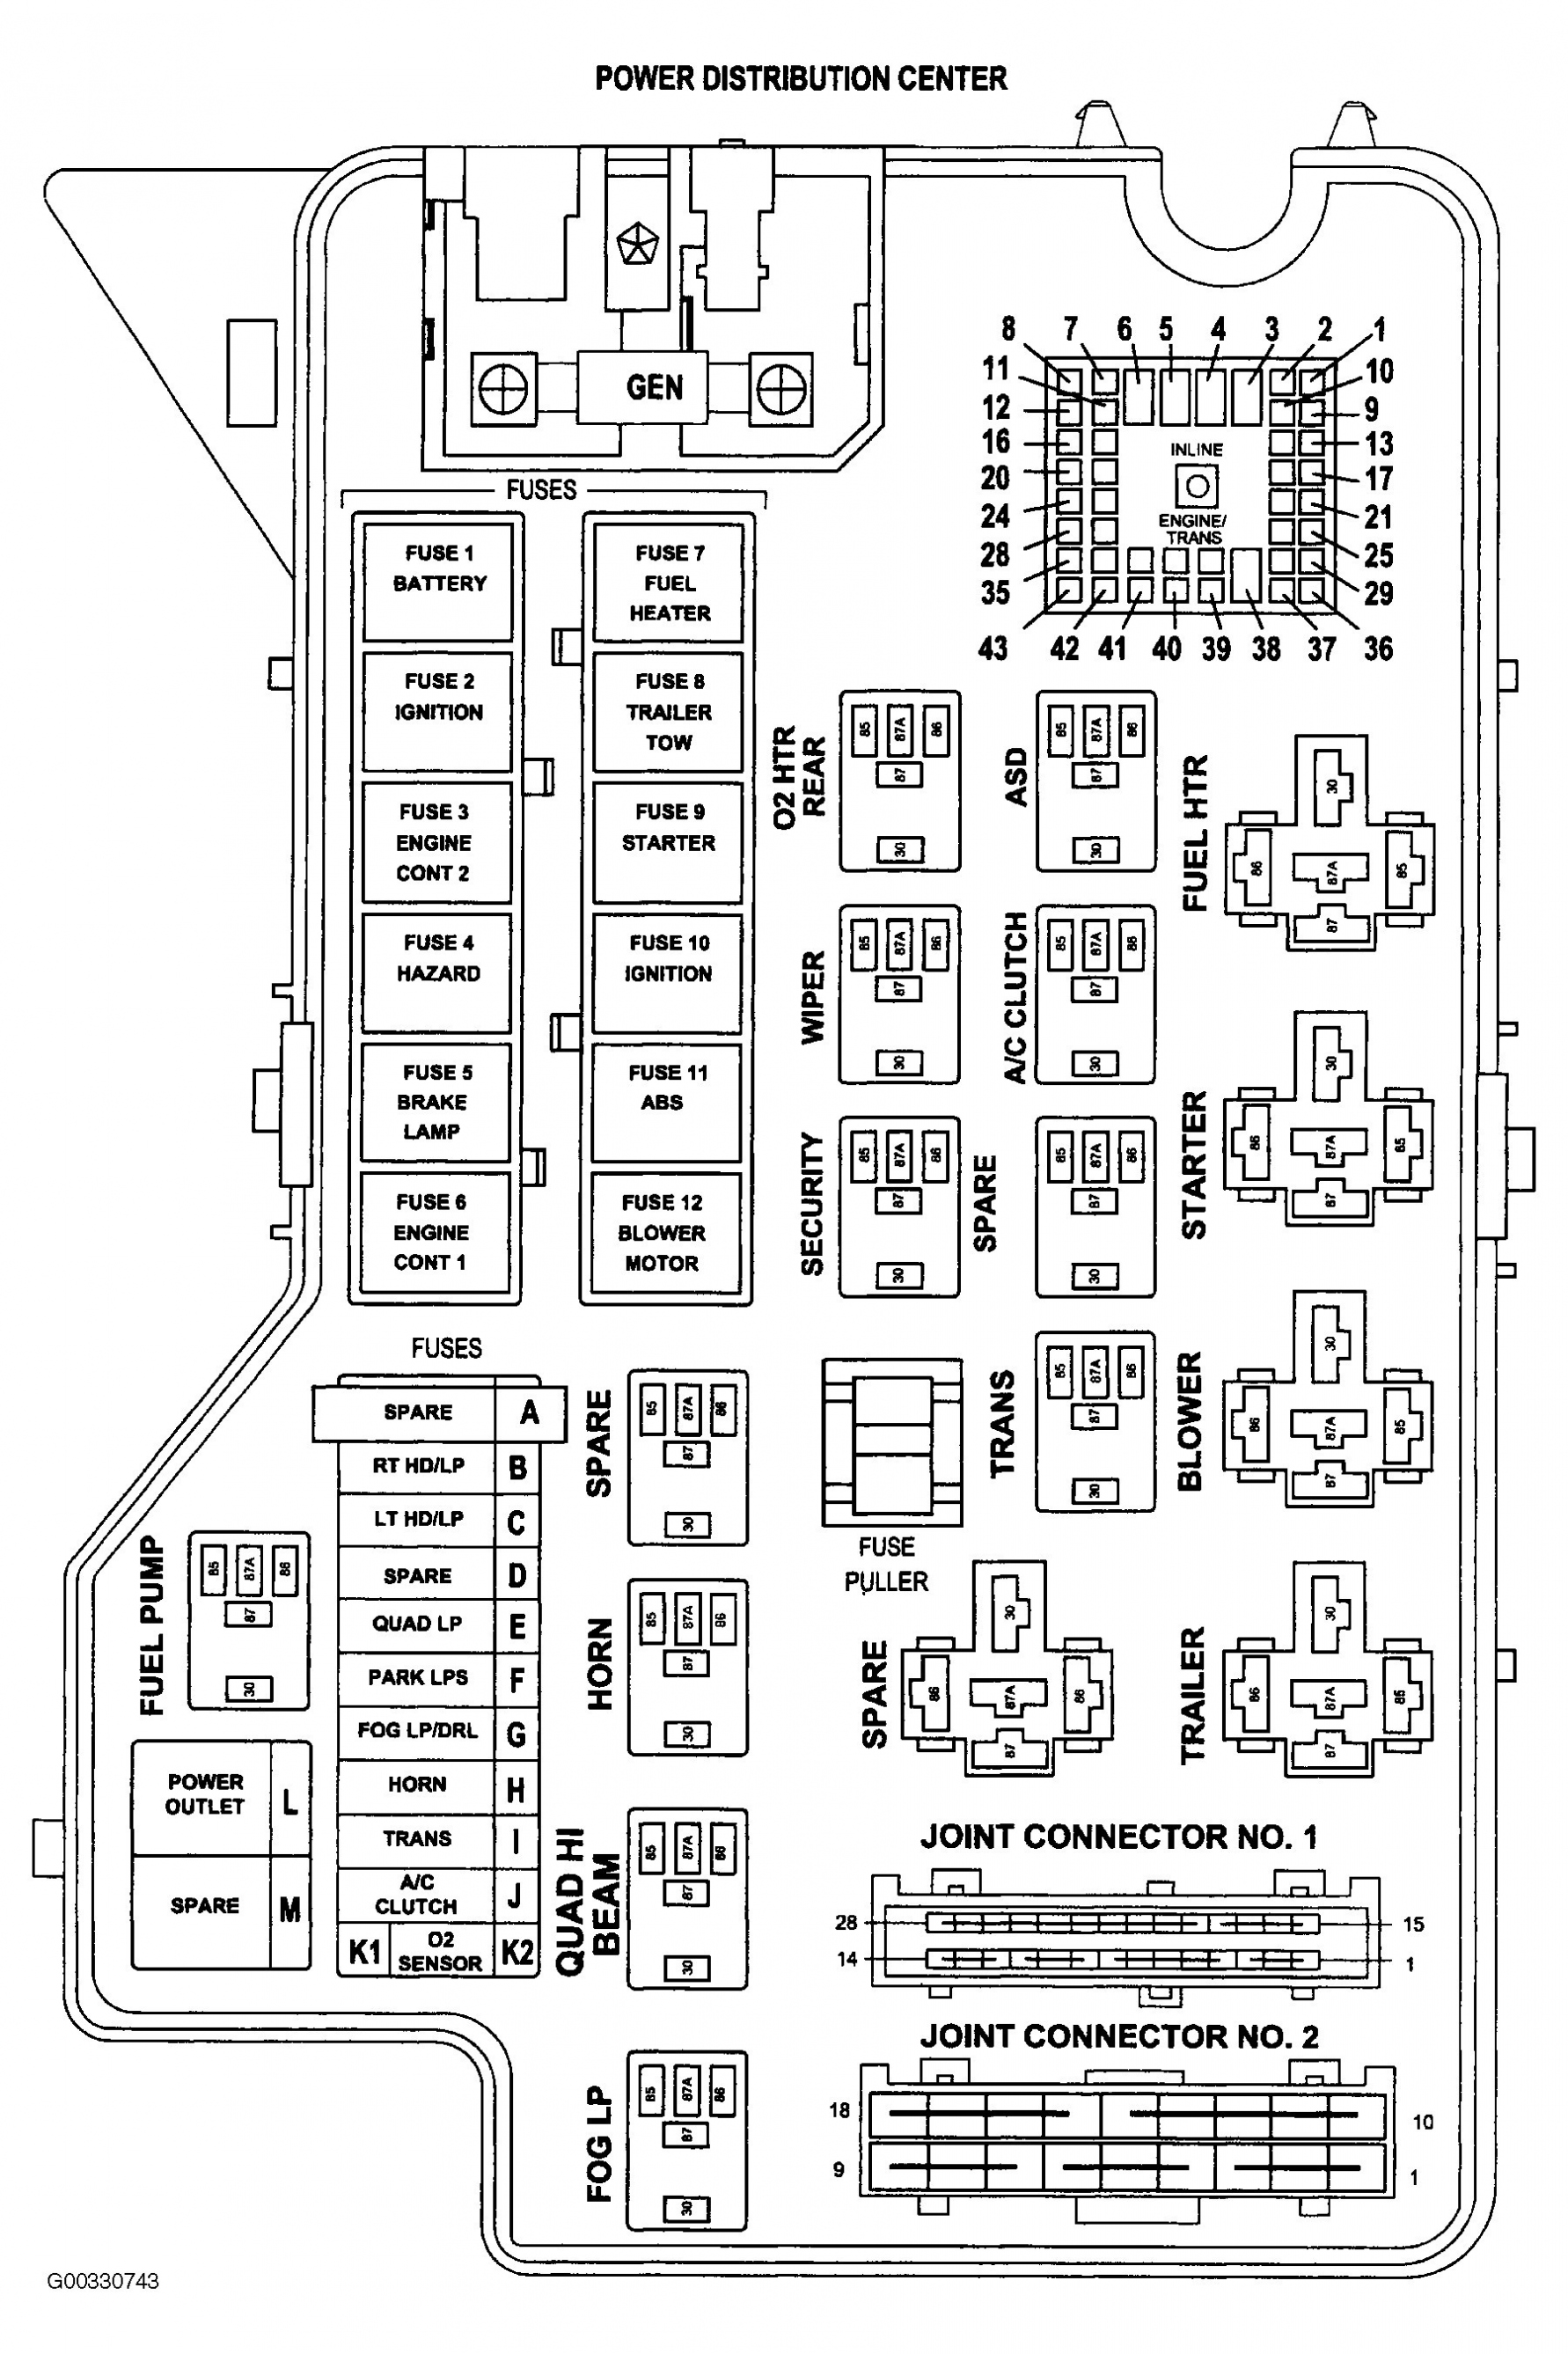 hight resolution of 98 dodge ram 1500 fuse box c3 schema wiring diagramfuse box drawings database wiring diagram 98